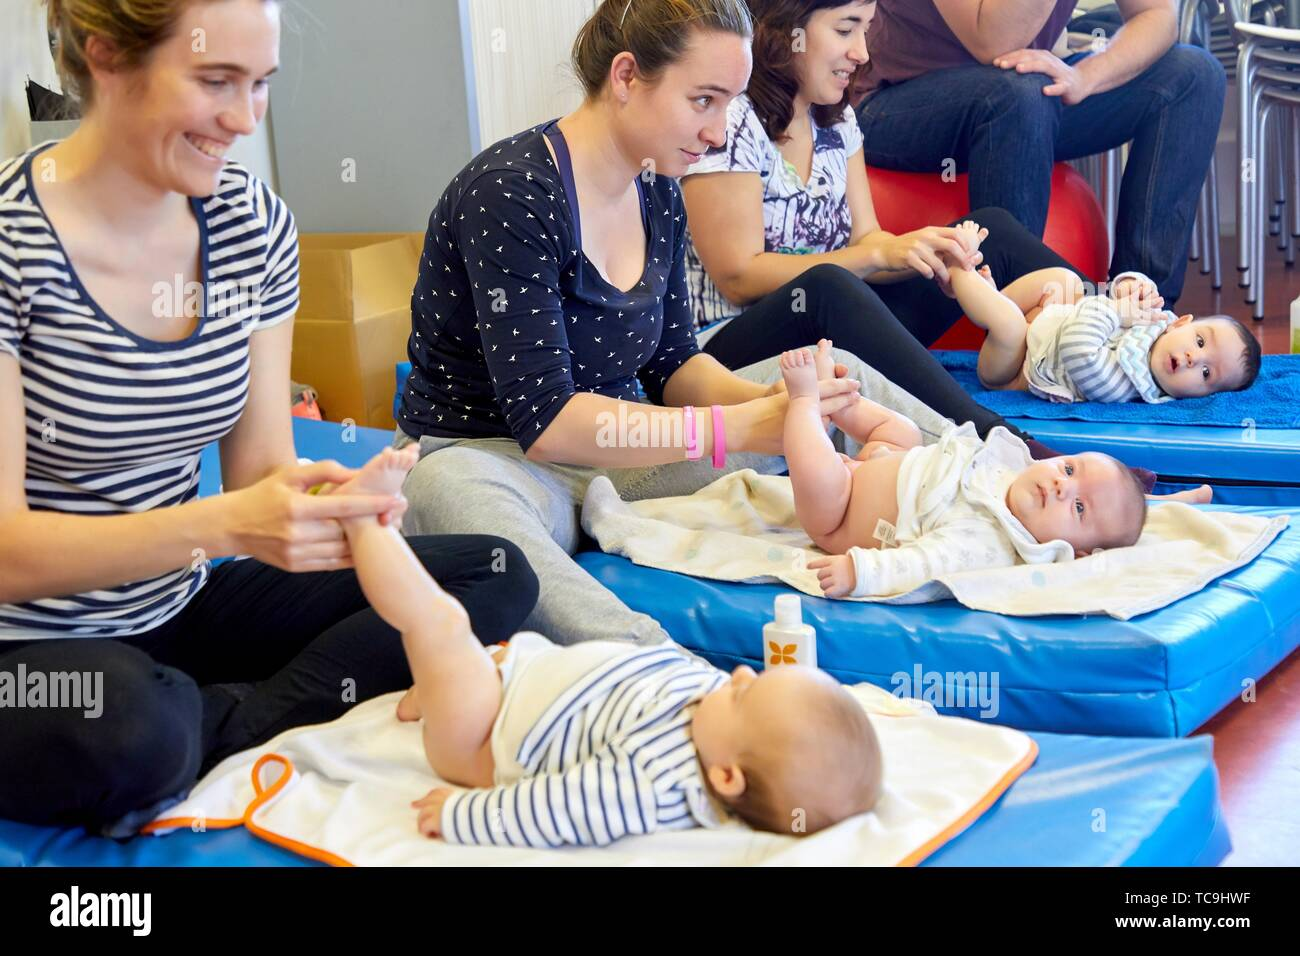 Matron instructing mothers in massage to babies, Health Center, Zarautz, Gipuzkoa, Basque Country, Spain - Stock Image